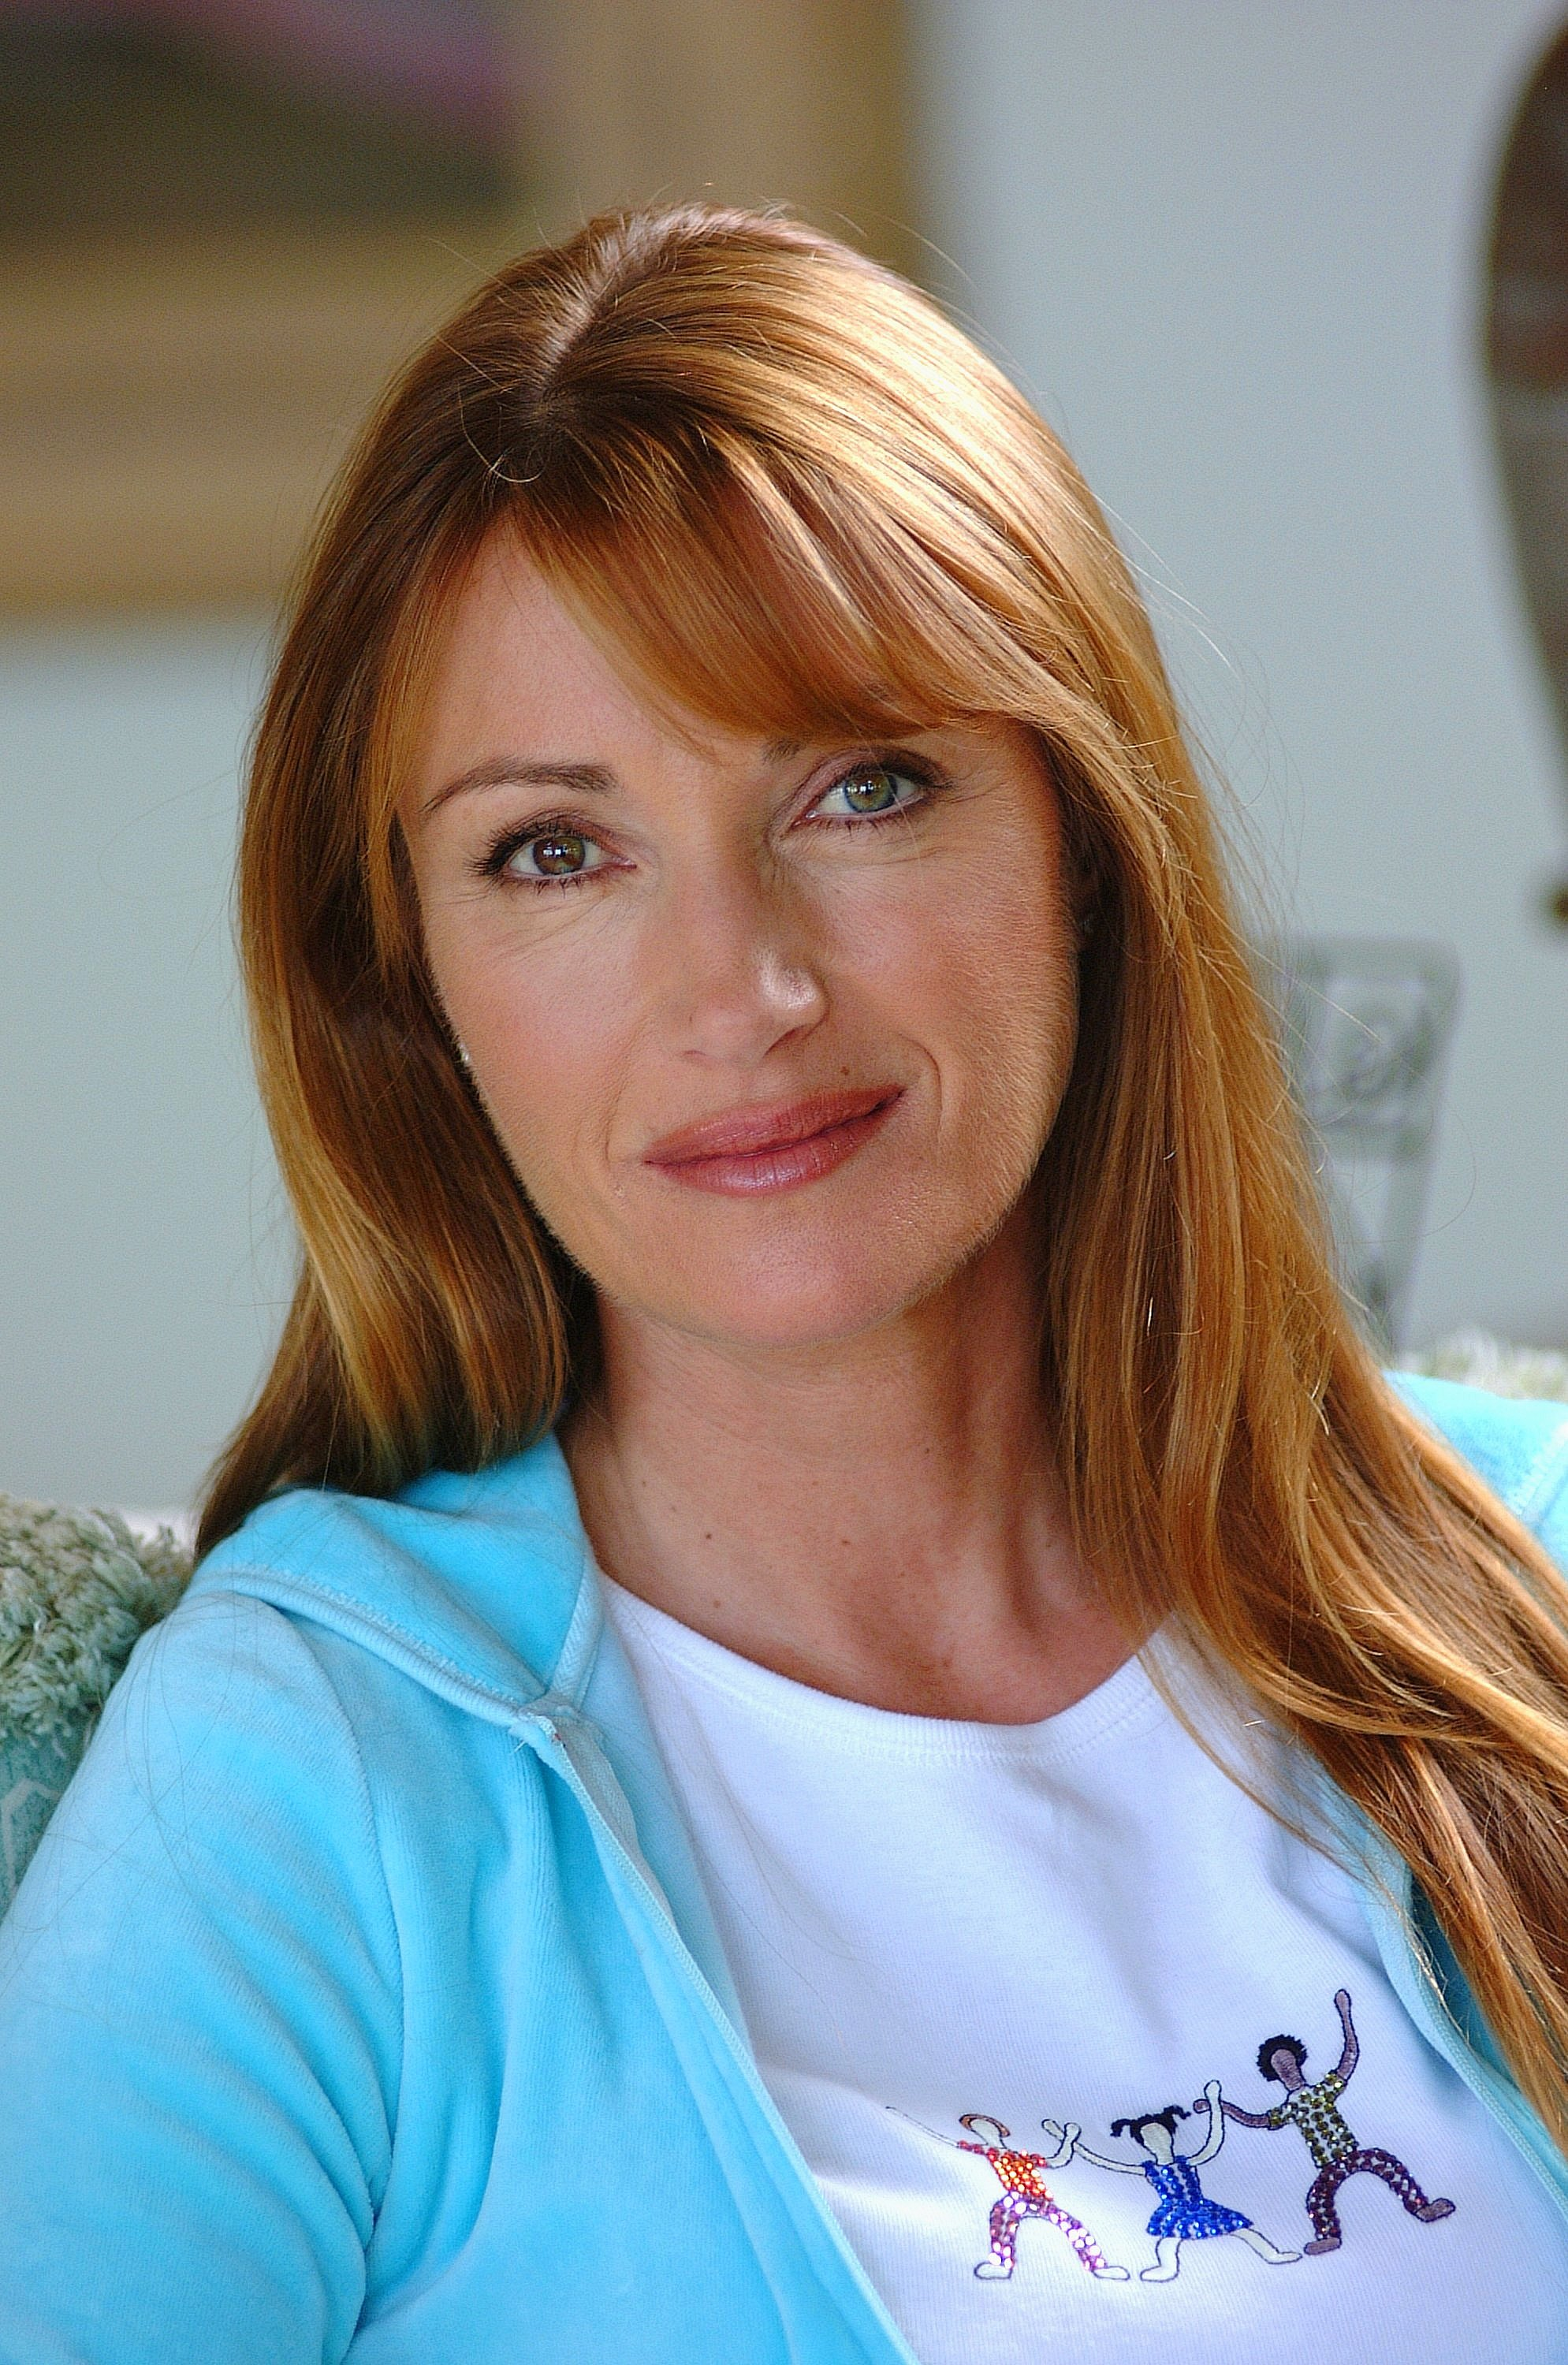 Jane Seymour at her home overlooking the Pacific ocean on June 12, 2002 | Photo: GettyImages